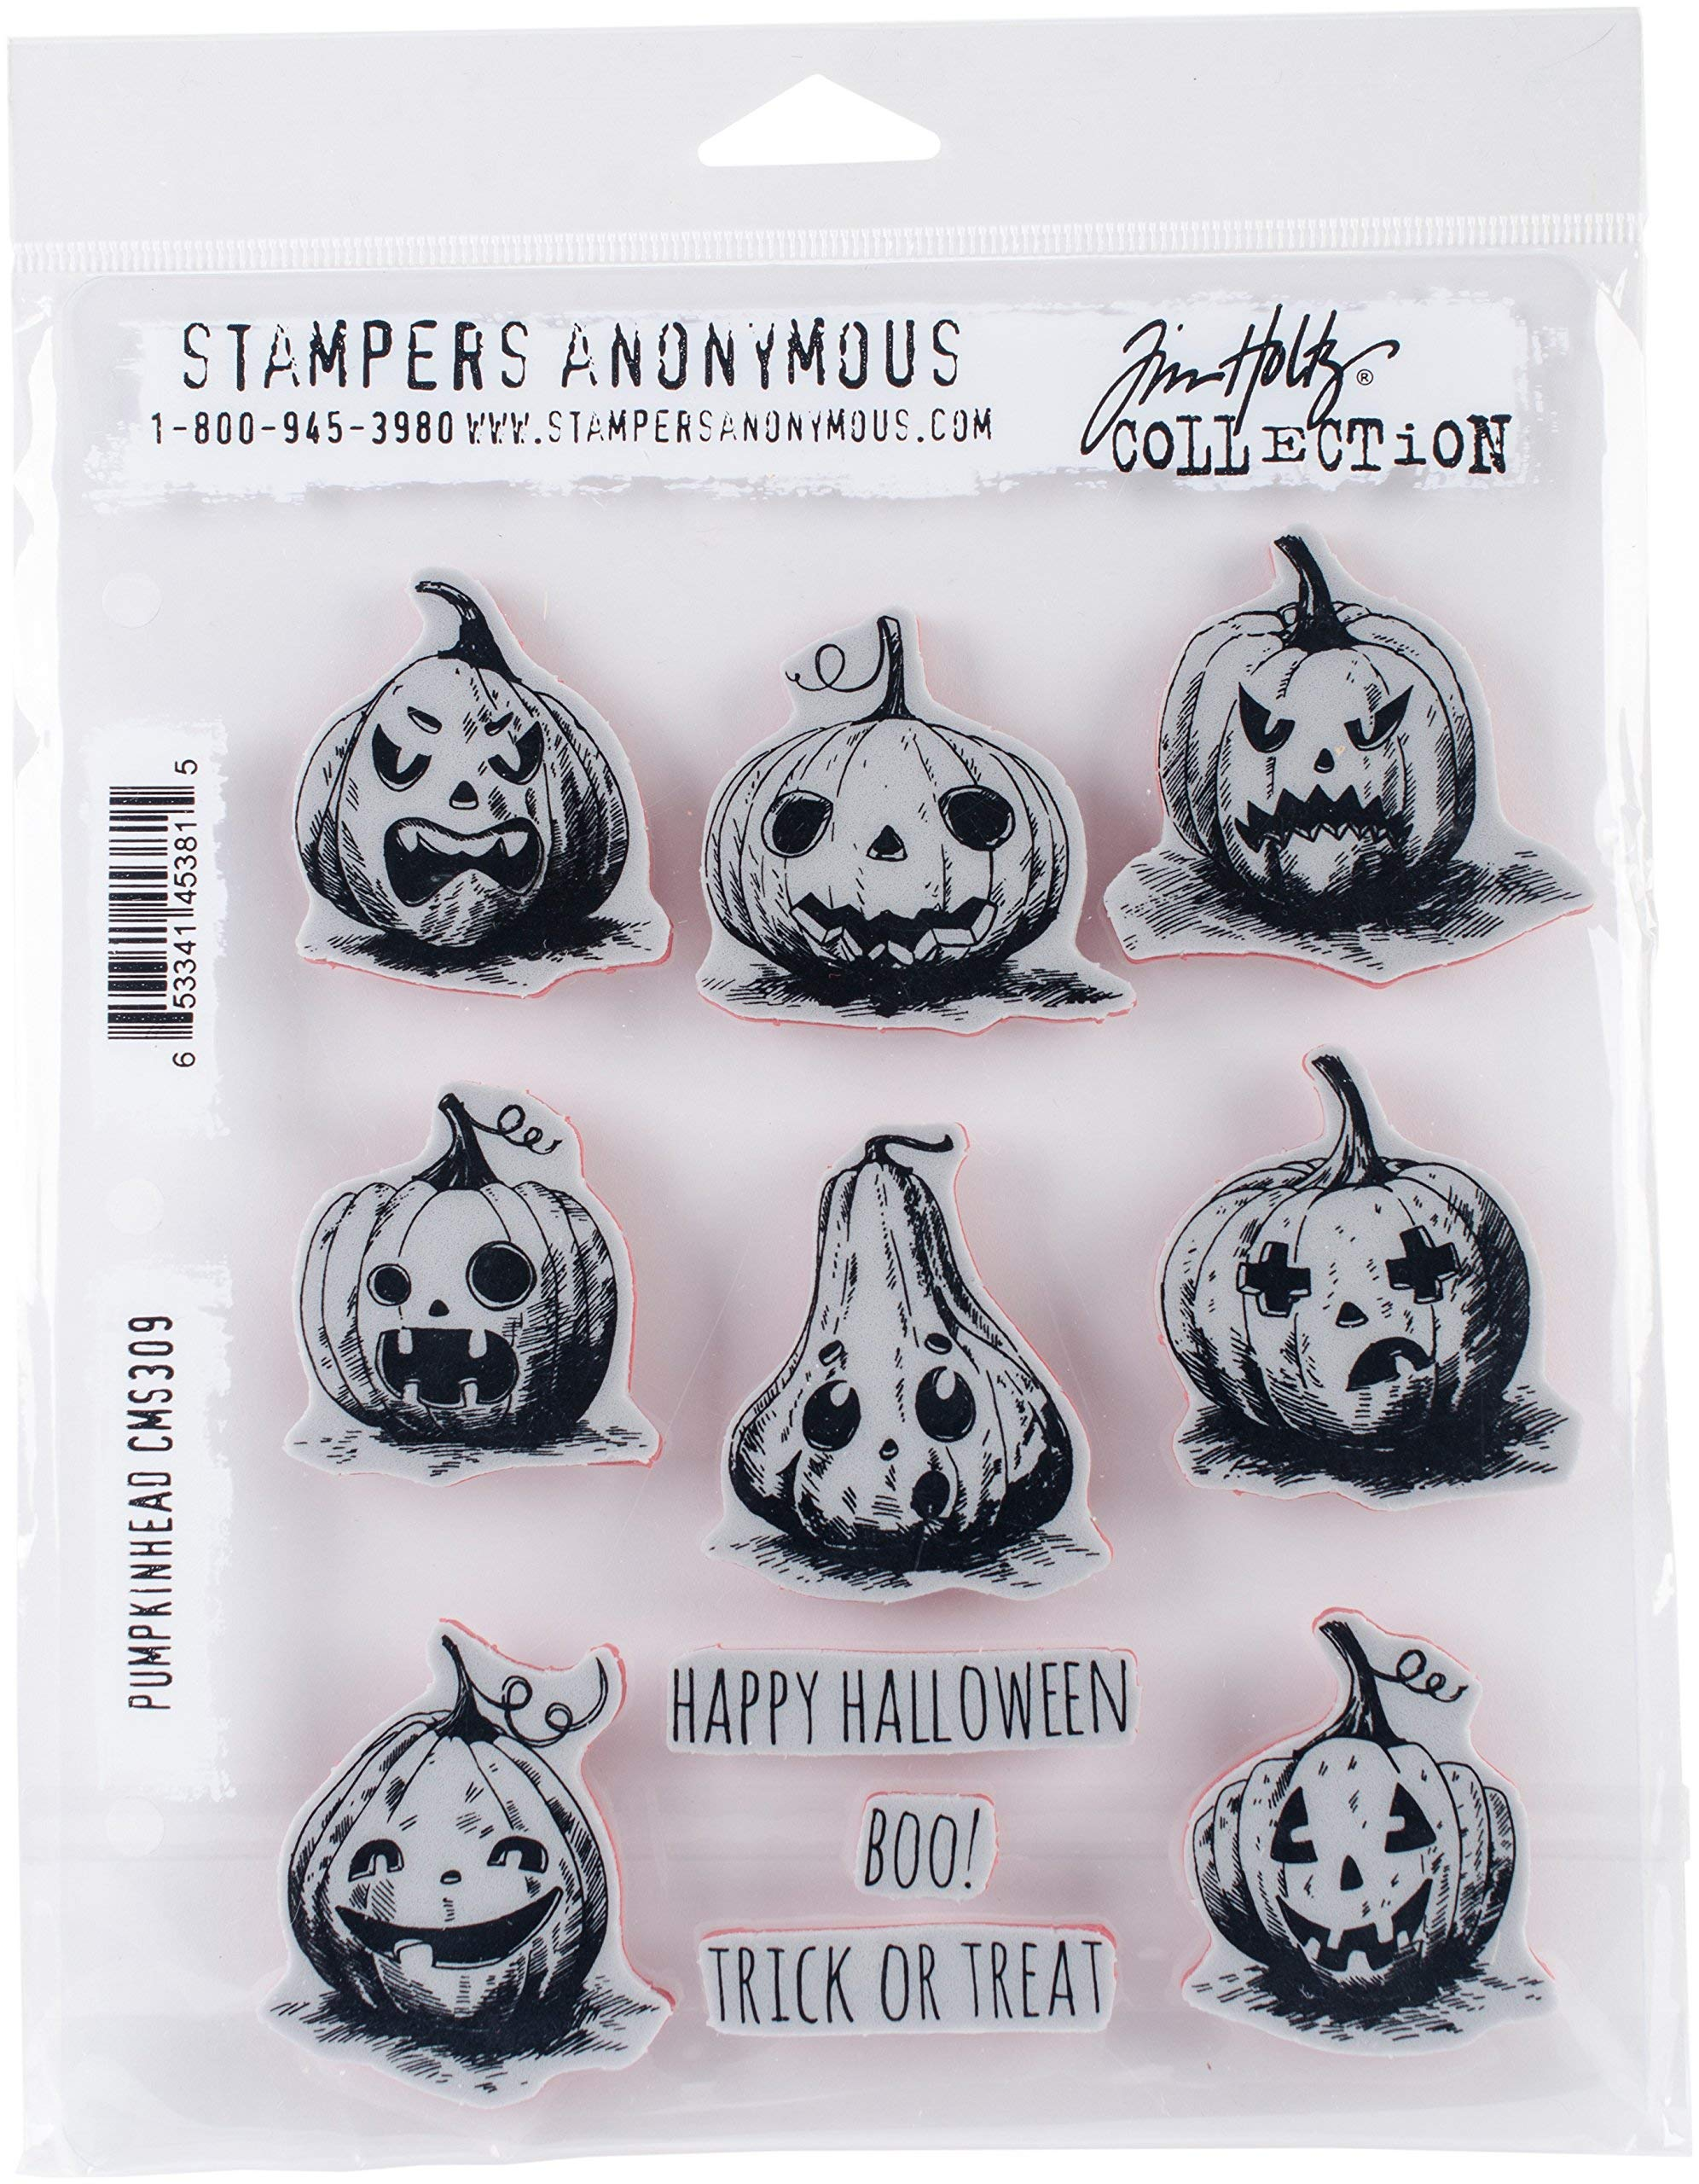 Stampers Anonymous''''Pumkinhead Tim Holtz Cling Stamps, 7'' x 8.5''